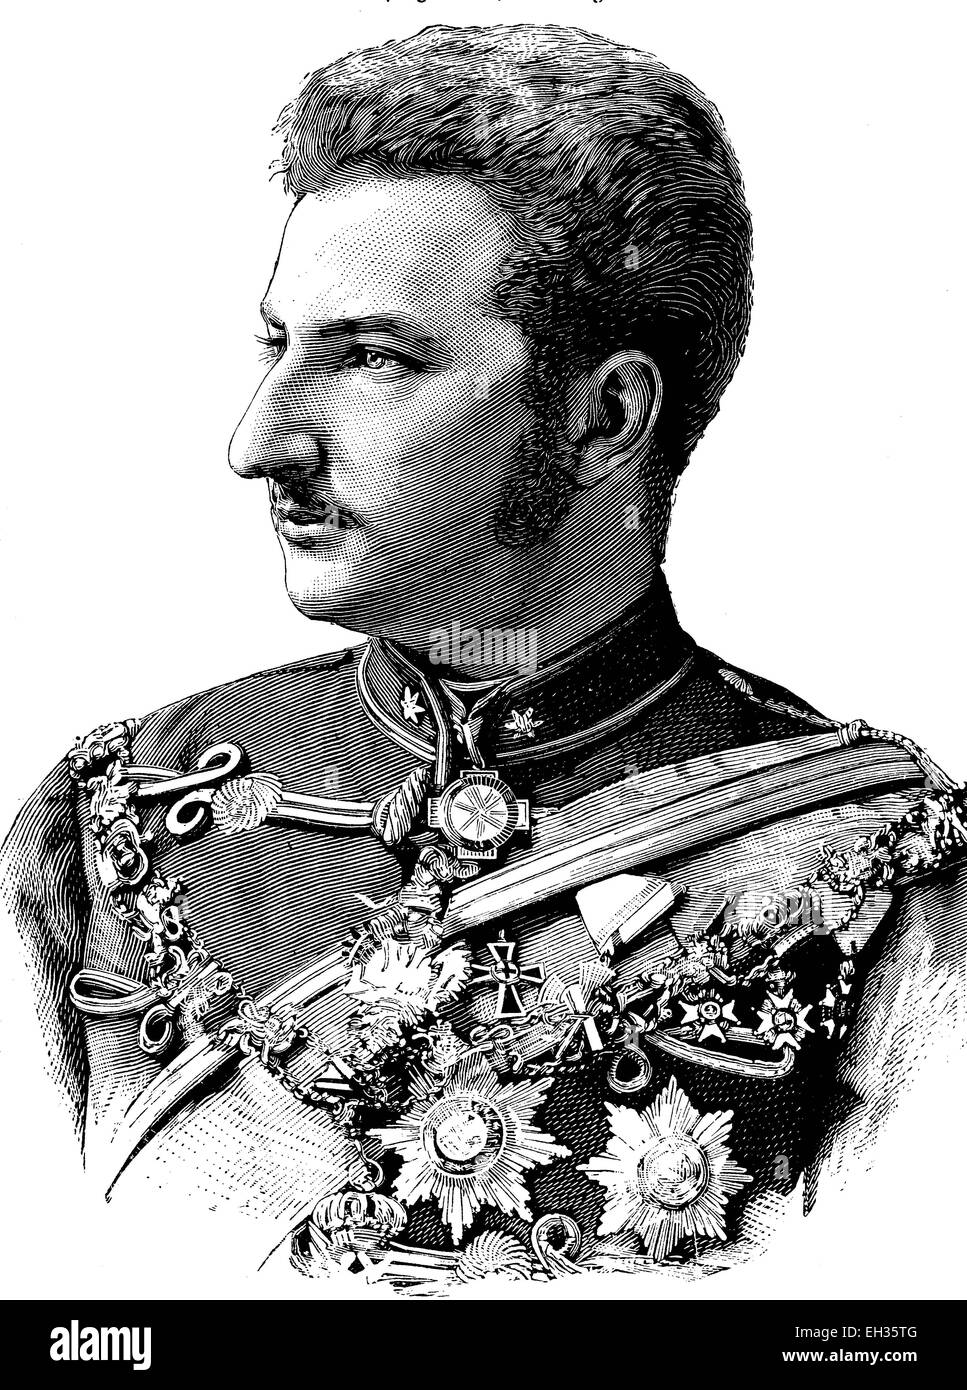 Ferdinand I, 1861-1948, Prince and King of Bulgaria, of Saxe-Coburg-Koh?ry dynasty, House of Wettin, woodcut, historical - Stock Image